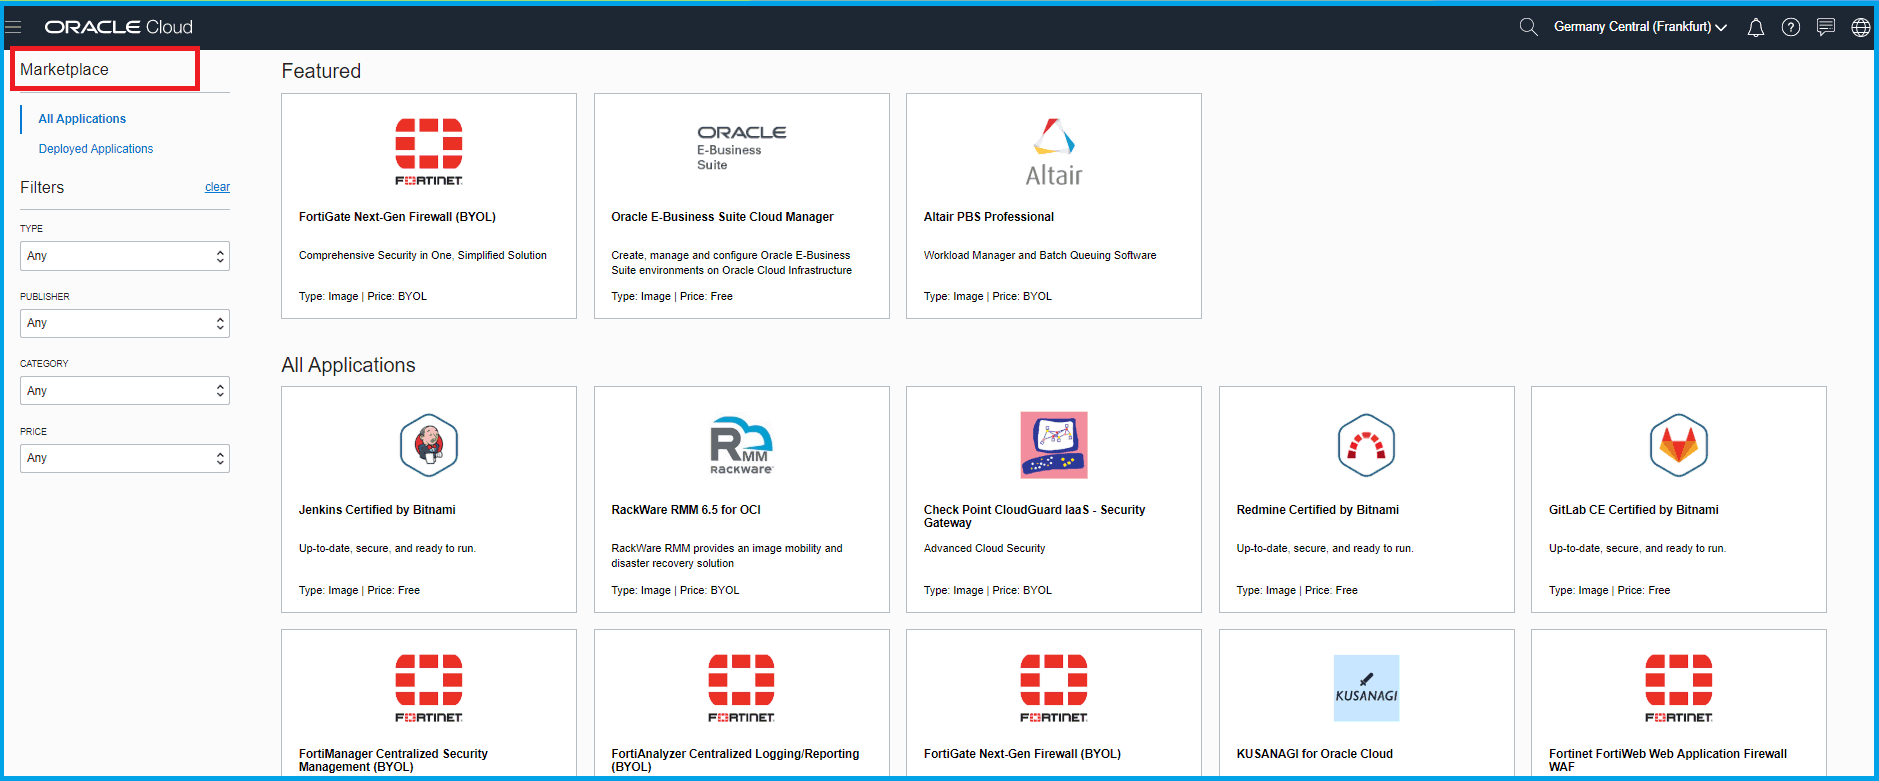 Oracle Cloud Marketplace